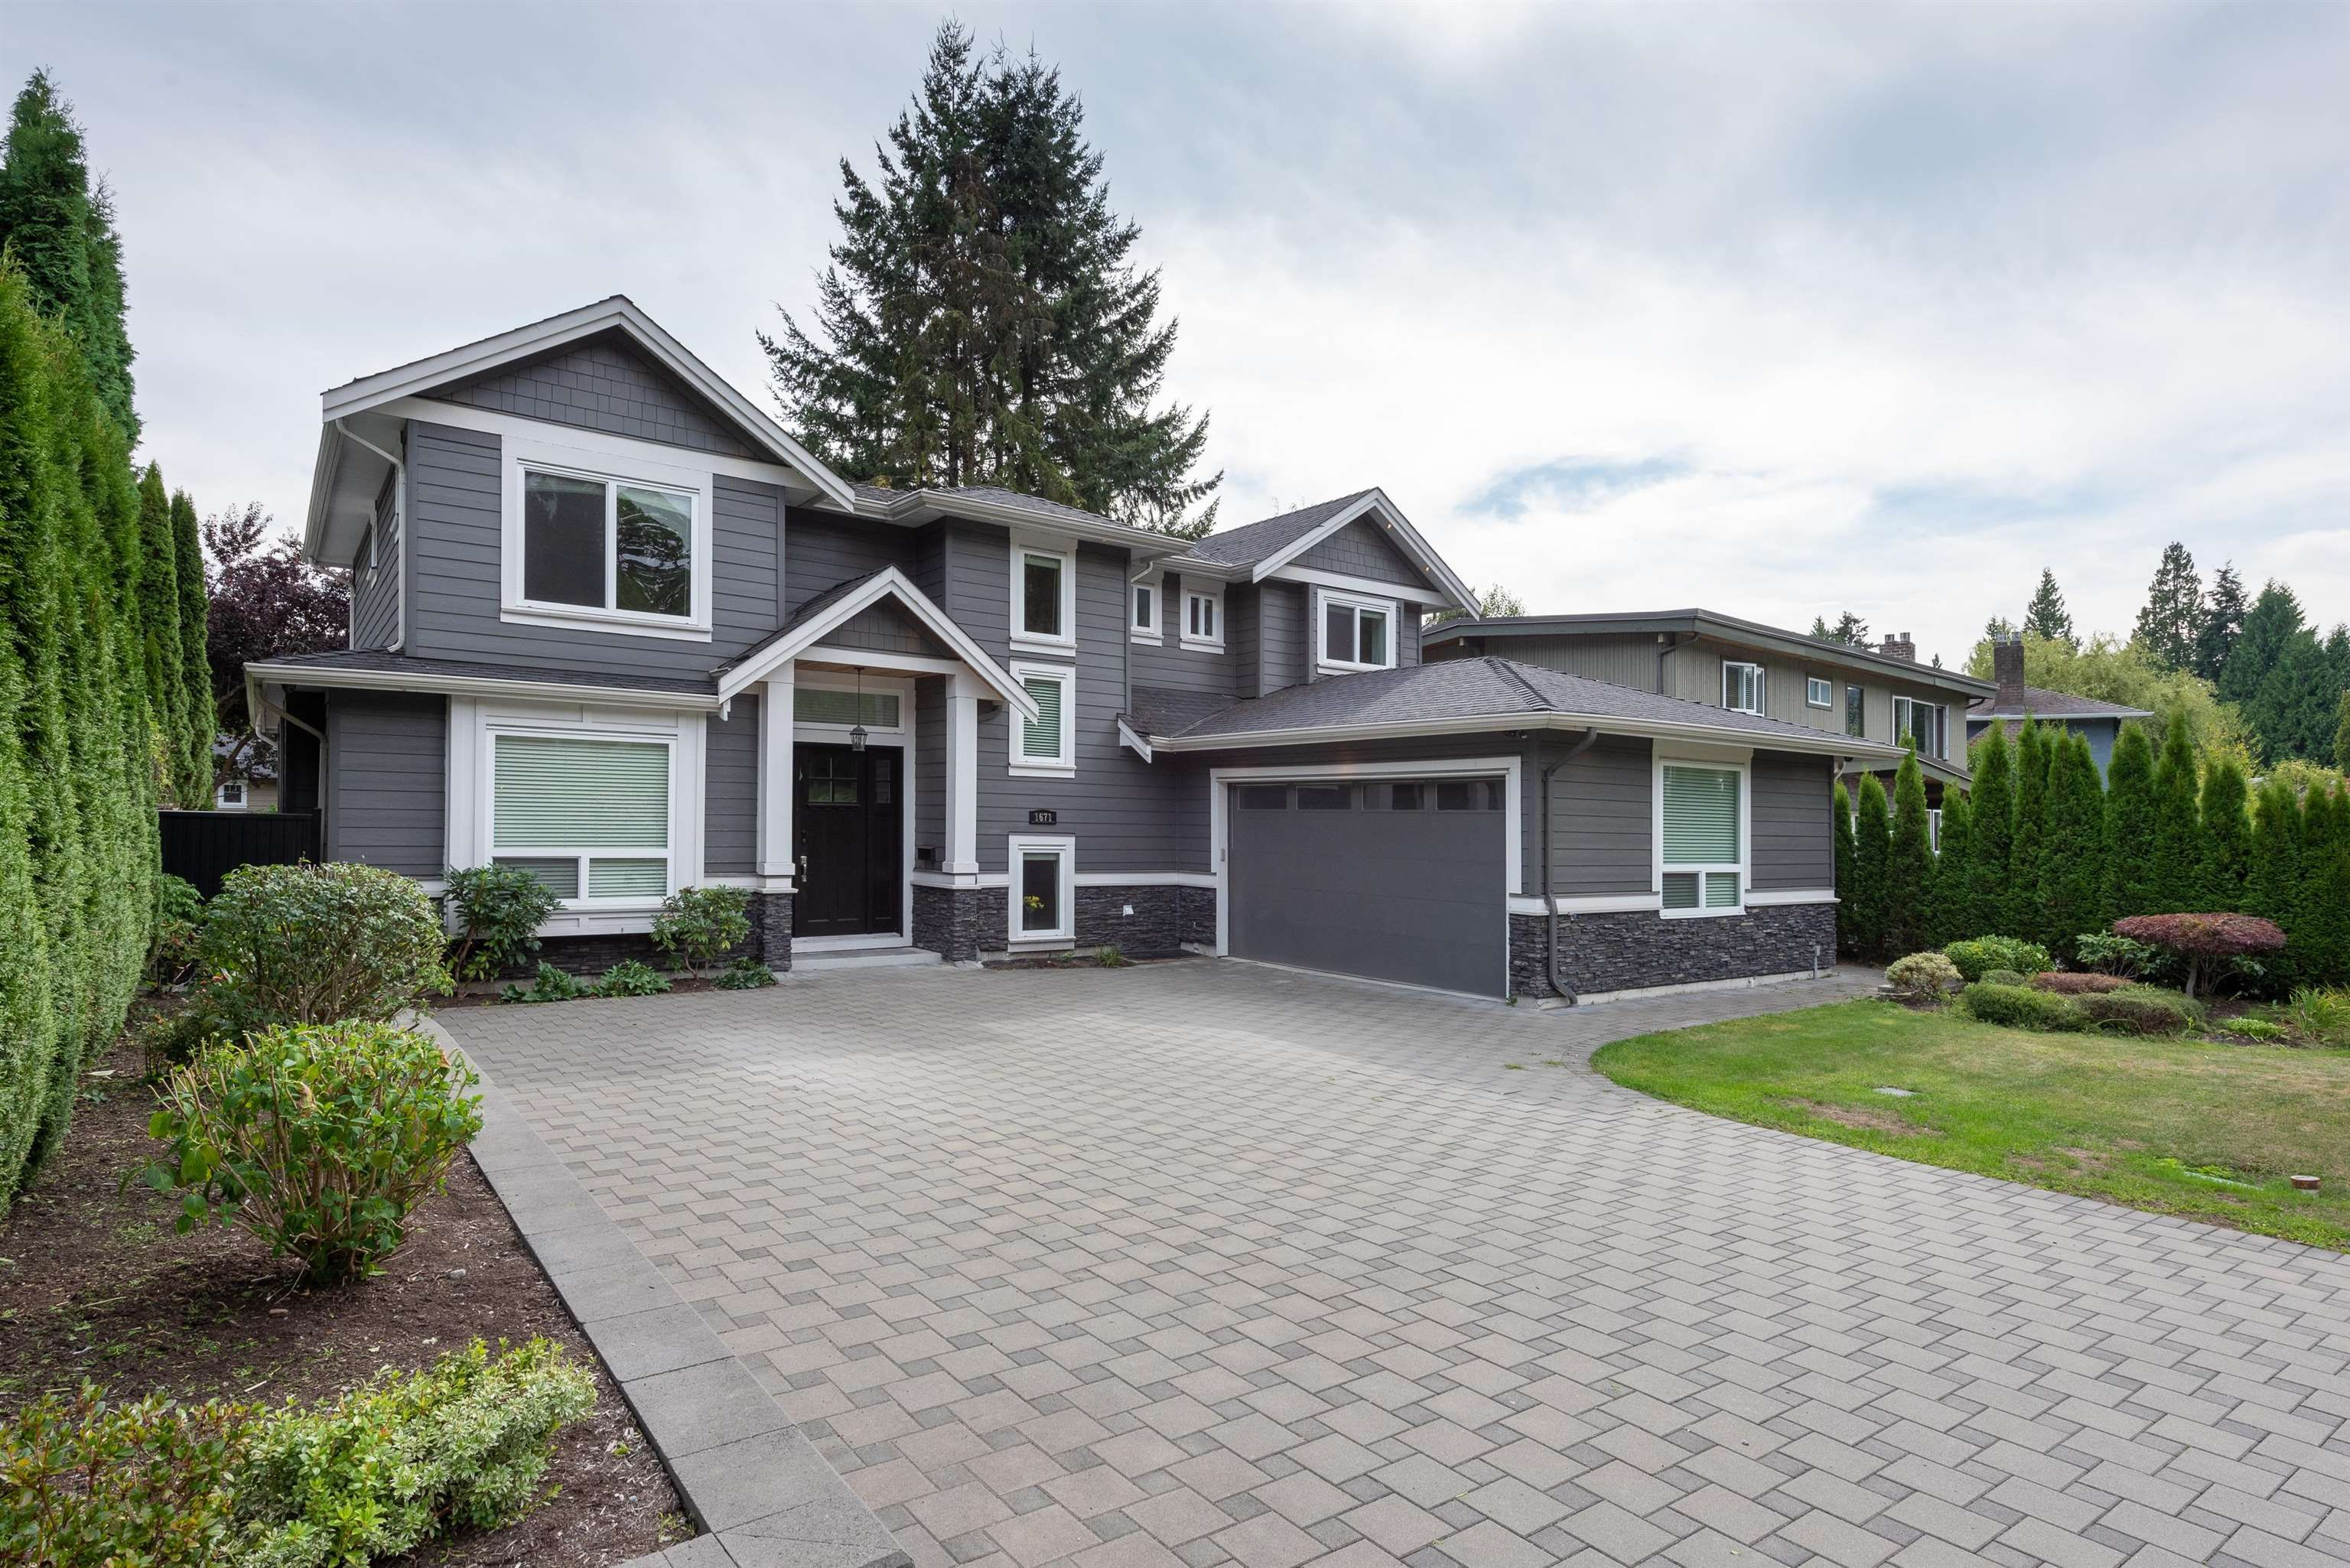 Main Photo: 1671 PIERARD Road in North Vancouver: Lynn Valley House for sale : MLS®# R2617072